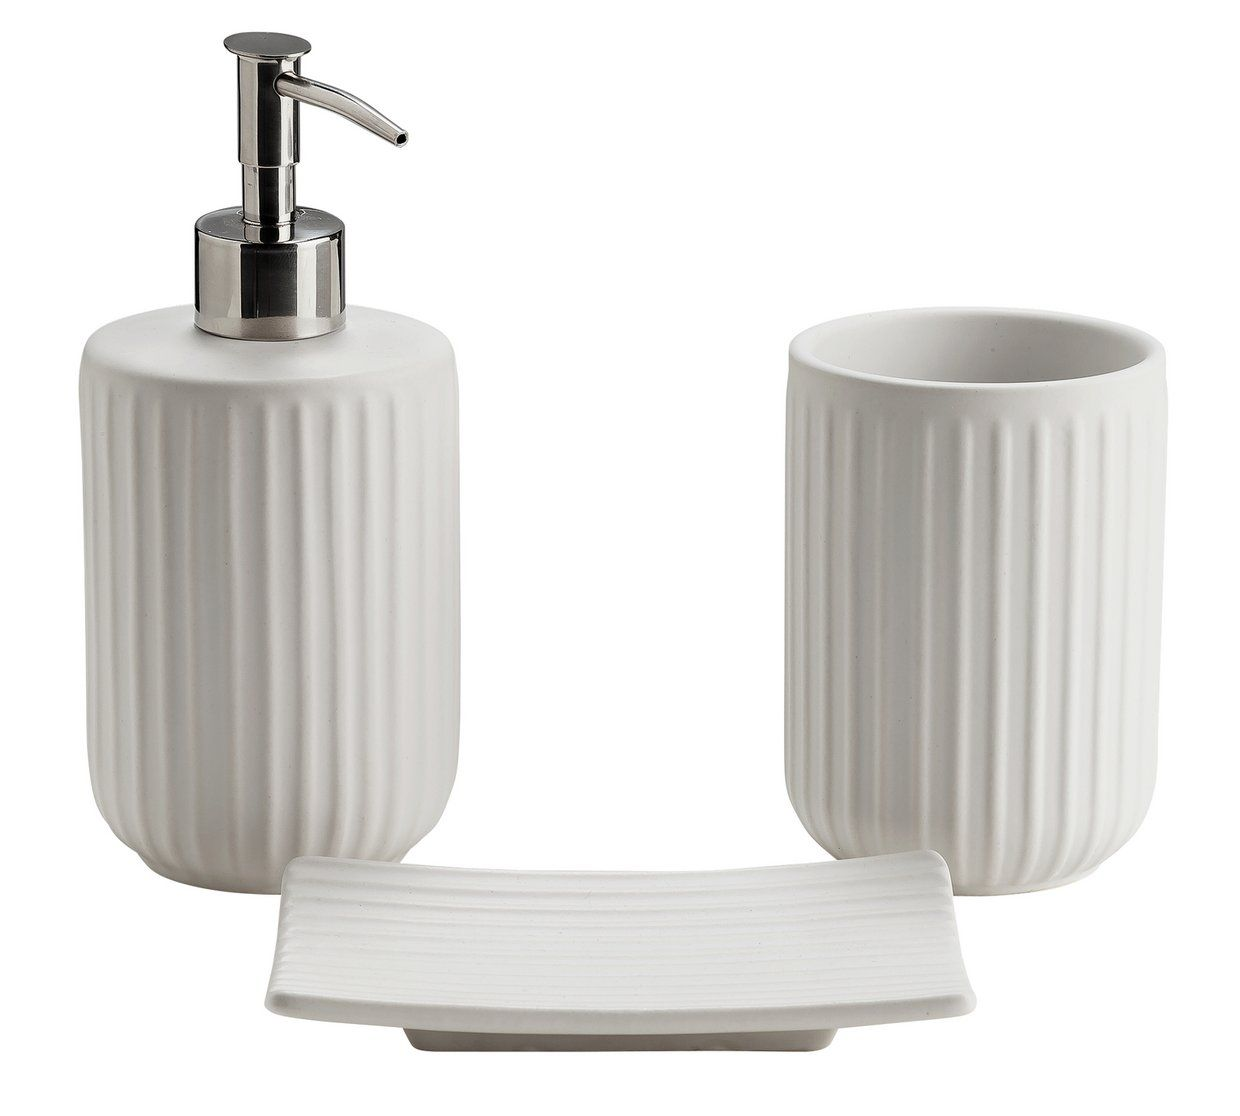 Buy Argos Home 3 Piece Bathroom Accessory Set White Ribbed Bathroom Sets And Fitting Bath Accessories Set Bathroom Sets Bathroom Accessories Sets